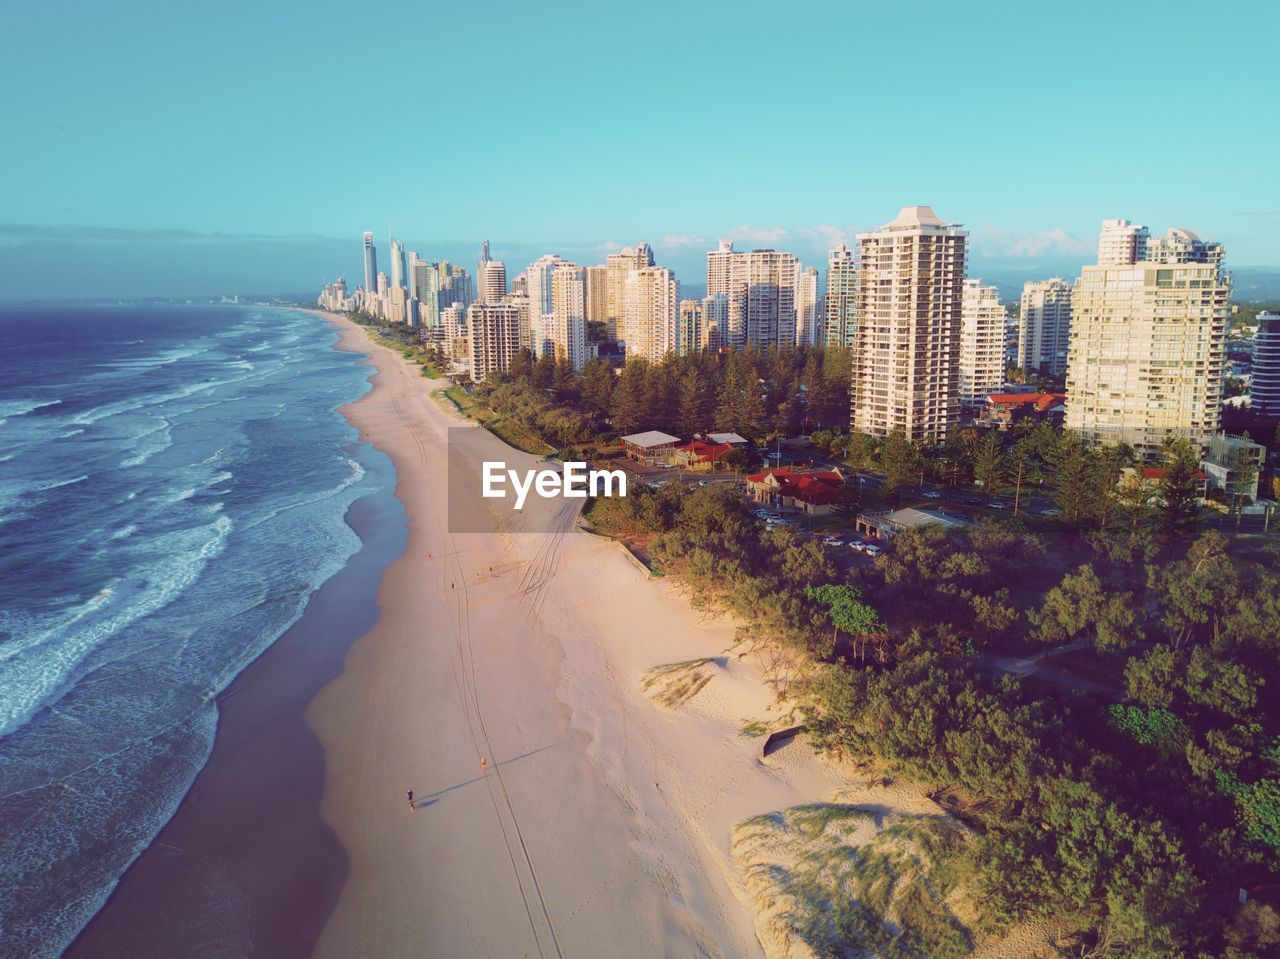 sea, architecture, beach, water, built structure, sky, building exterior, city, land, nature, plant, day, building, clear sky, tree, sand, outdoors, cityscape, no people, office building exterior, skyscraper